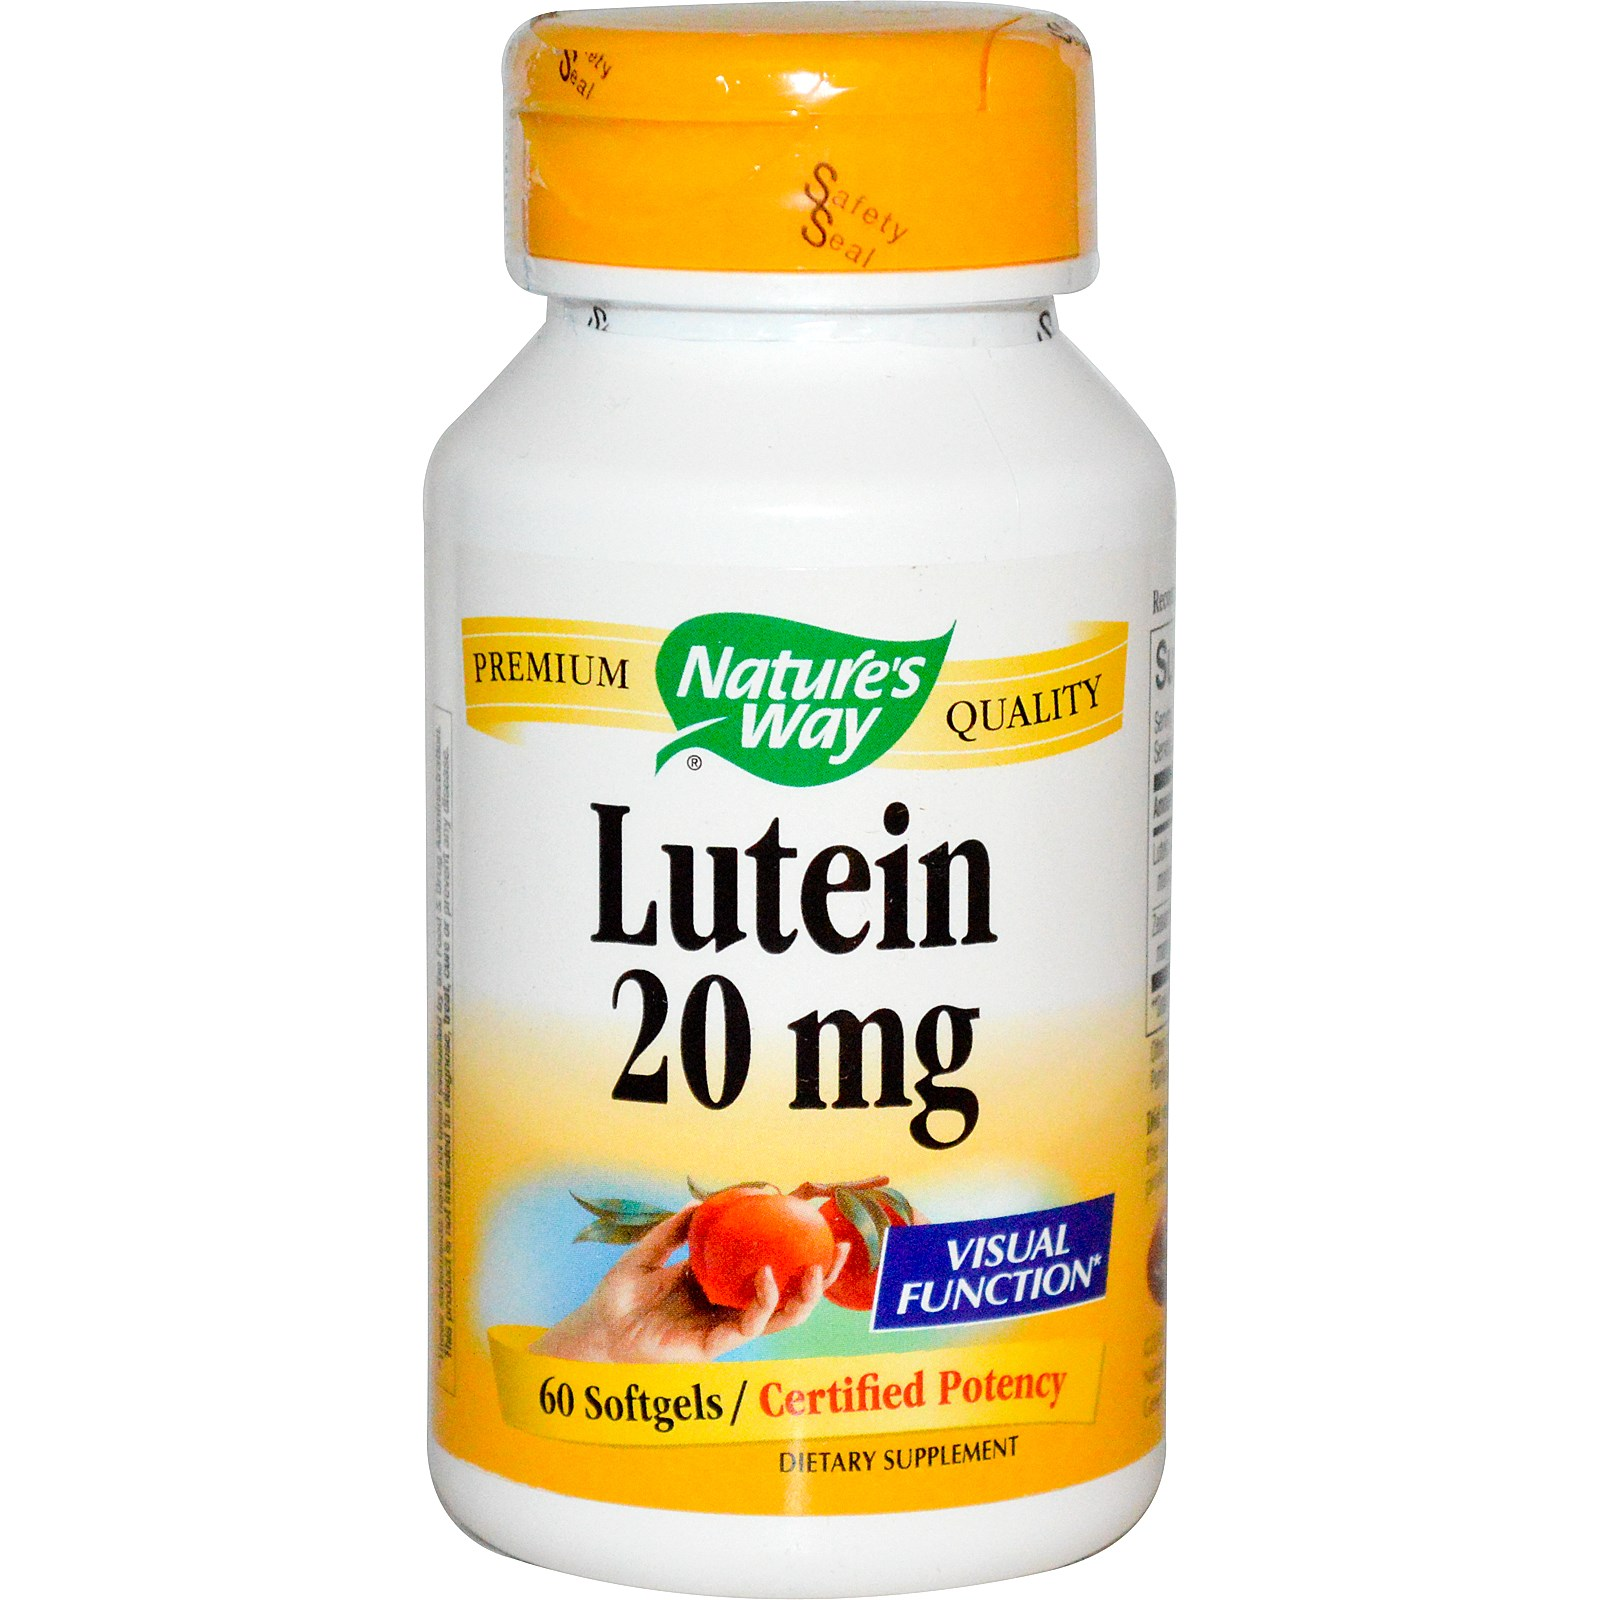 Nature's Way Lutein - 20 mg 60 softgels